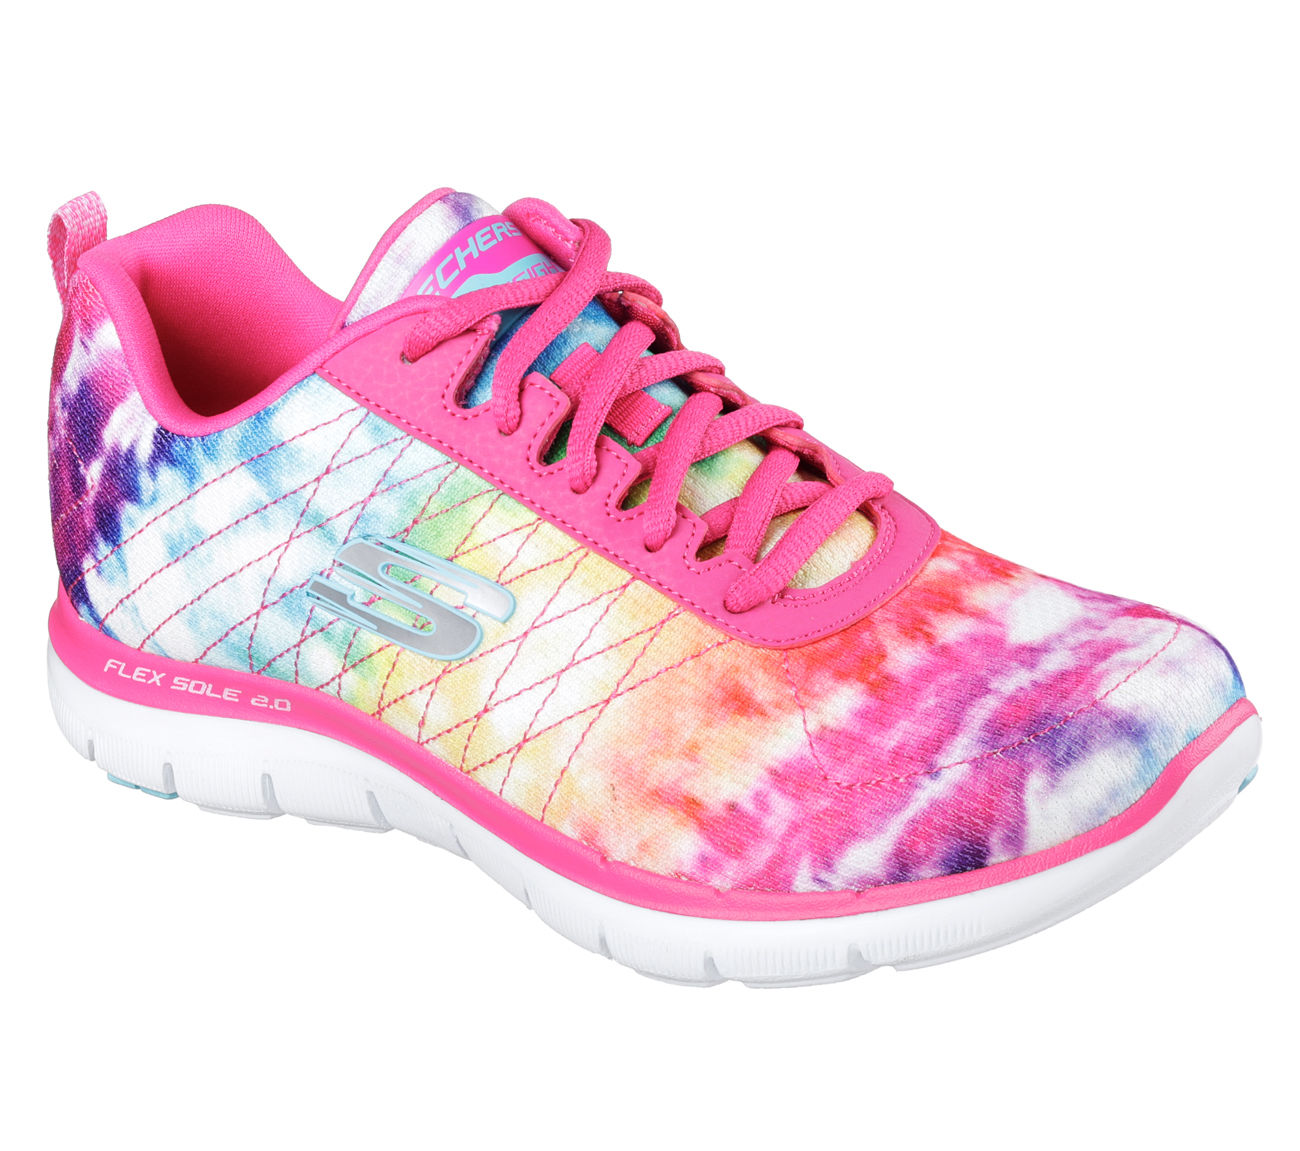 Skechers 12759 PKMT Women's FLEX APPEAL 2.0-LOUD AND CLEAR Training by Skechers